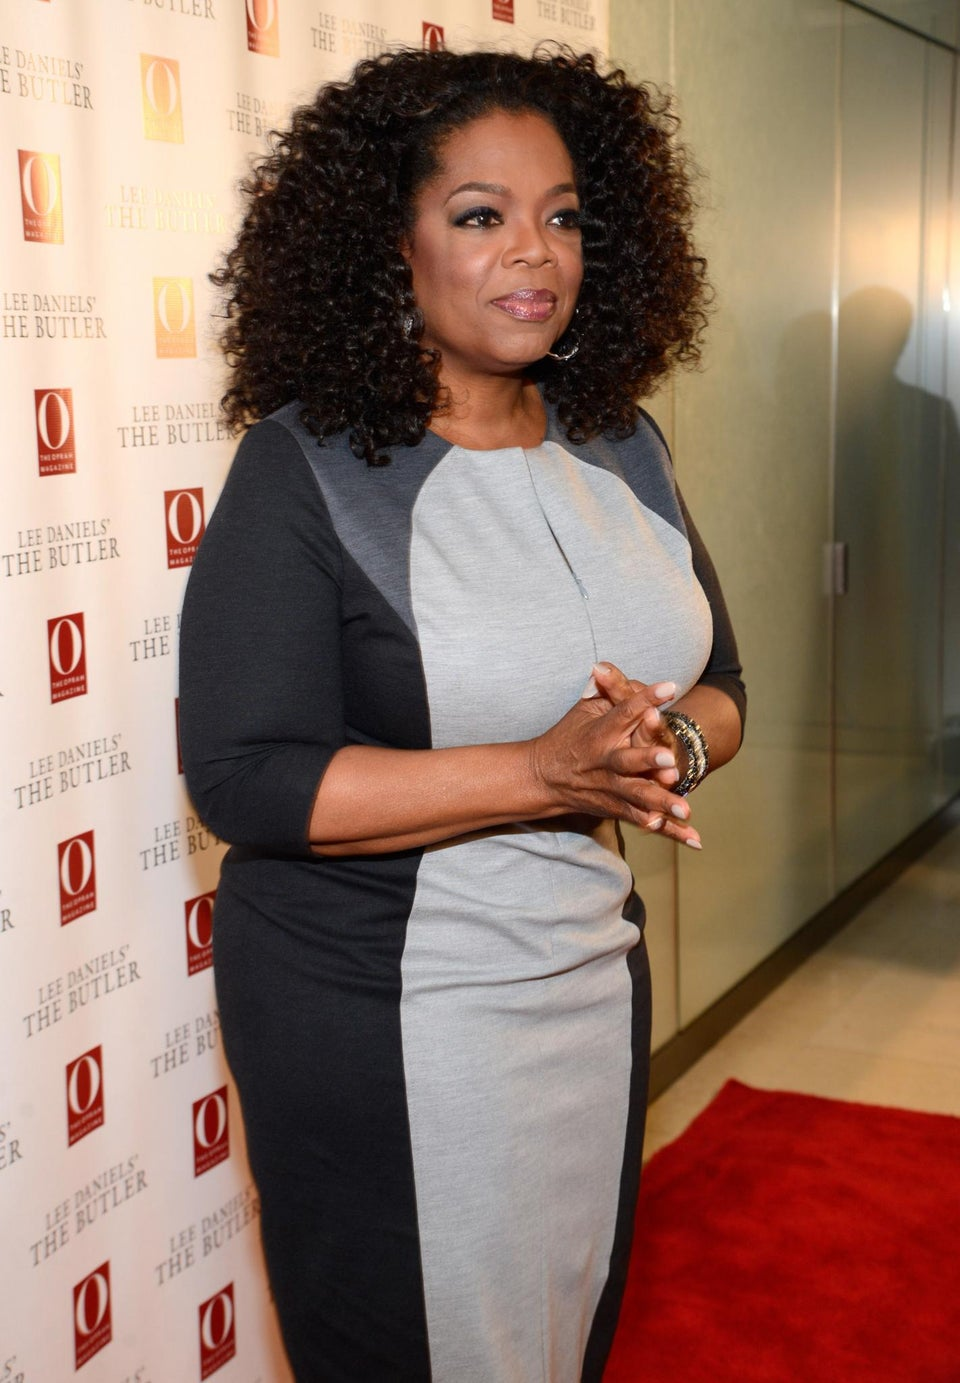 ESSENCE Poll: Do You Agree With Oprah's Thoughts on the N-Word?